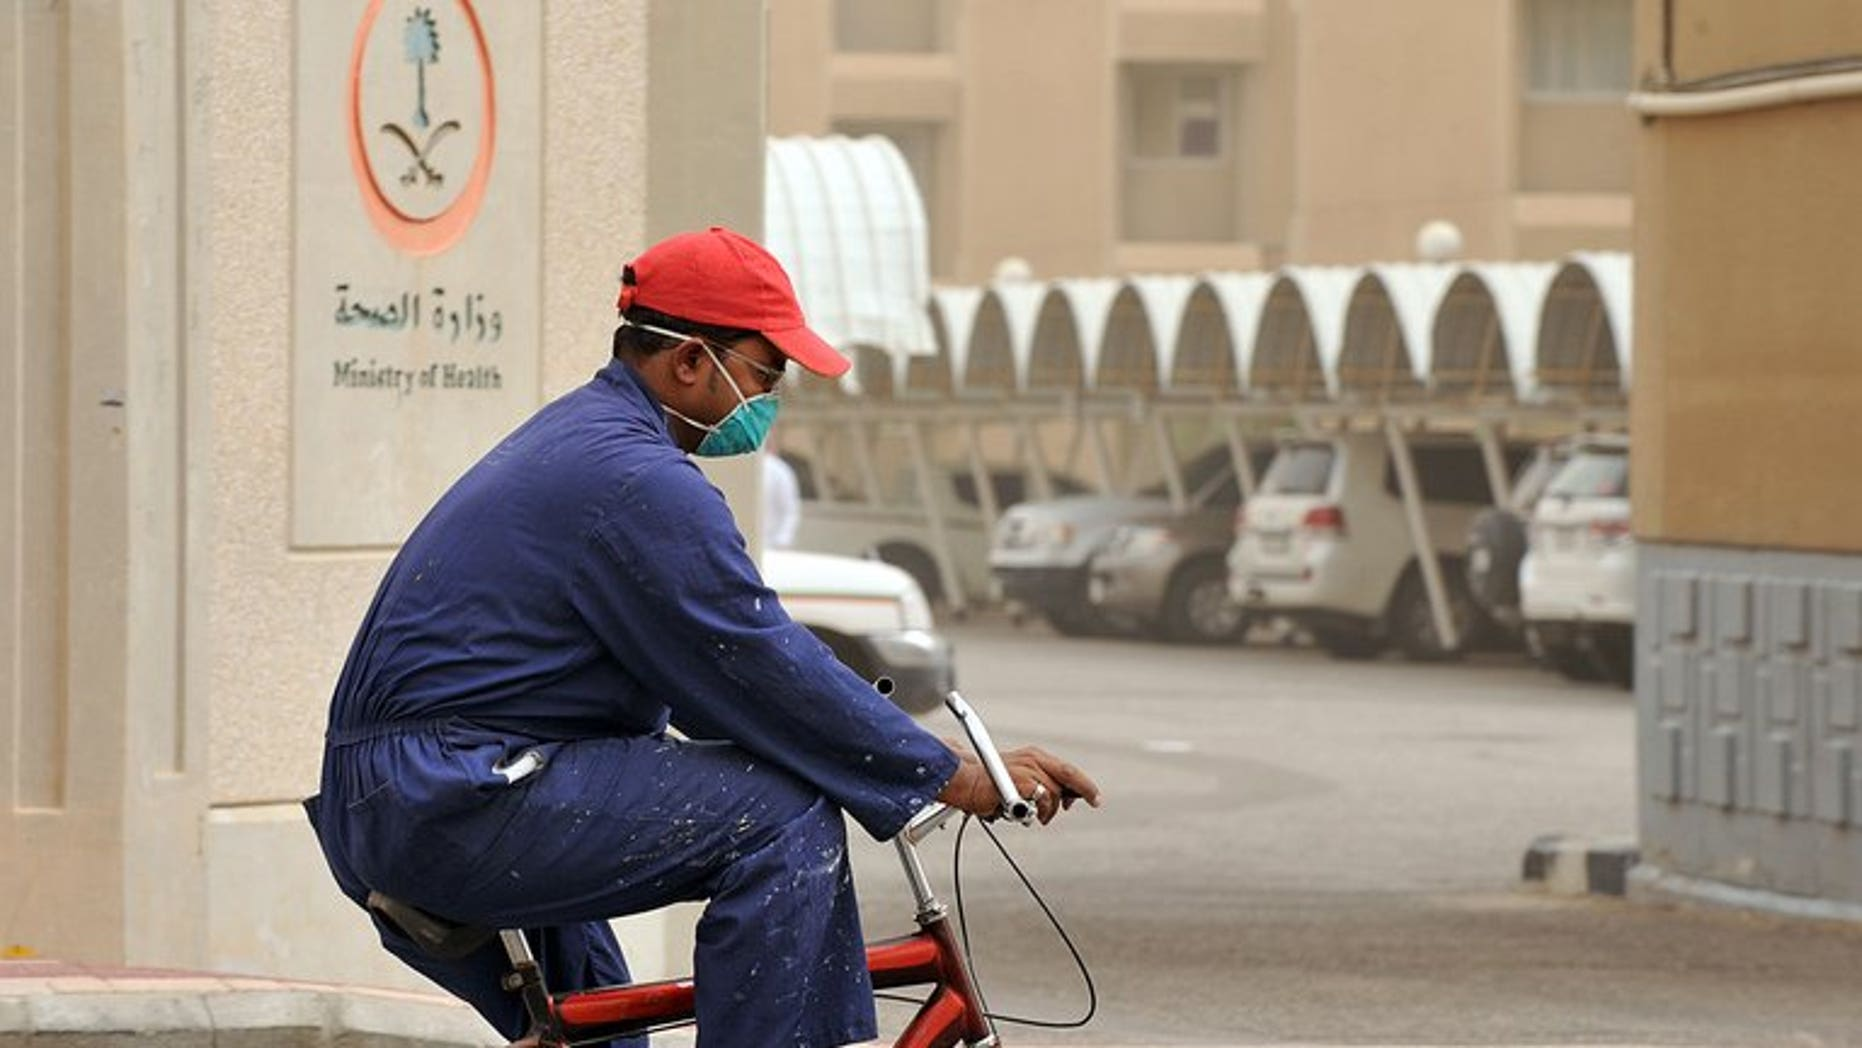 A man wears a mask as he rides a bicycle near the King Fahad hospital in the city of Hofuf, Saudi Arabia on June 16, 2013. The World Health Organization on Wednesday held off from calling for travel restrictions related to the MERS virus striking hardest in Saudi Arabia, after emergency talks on the mystery illness.